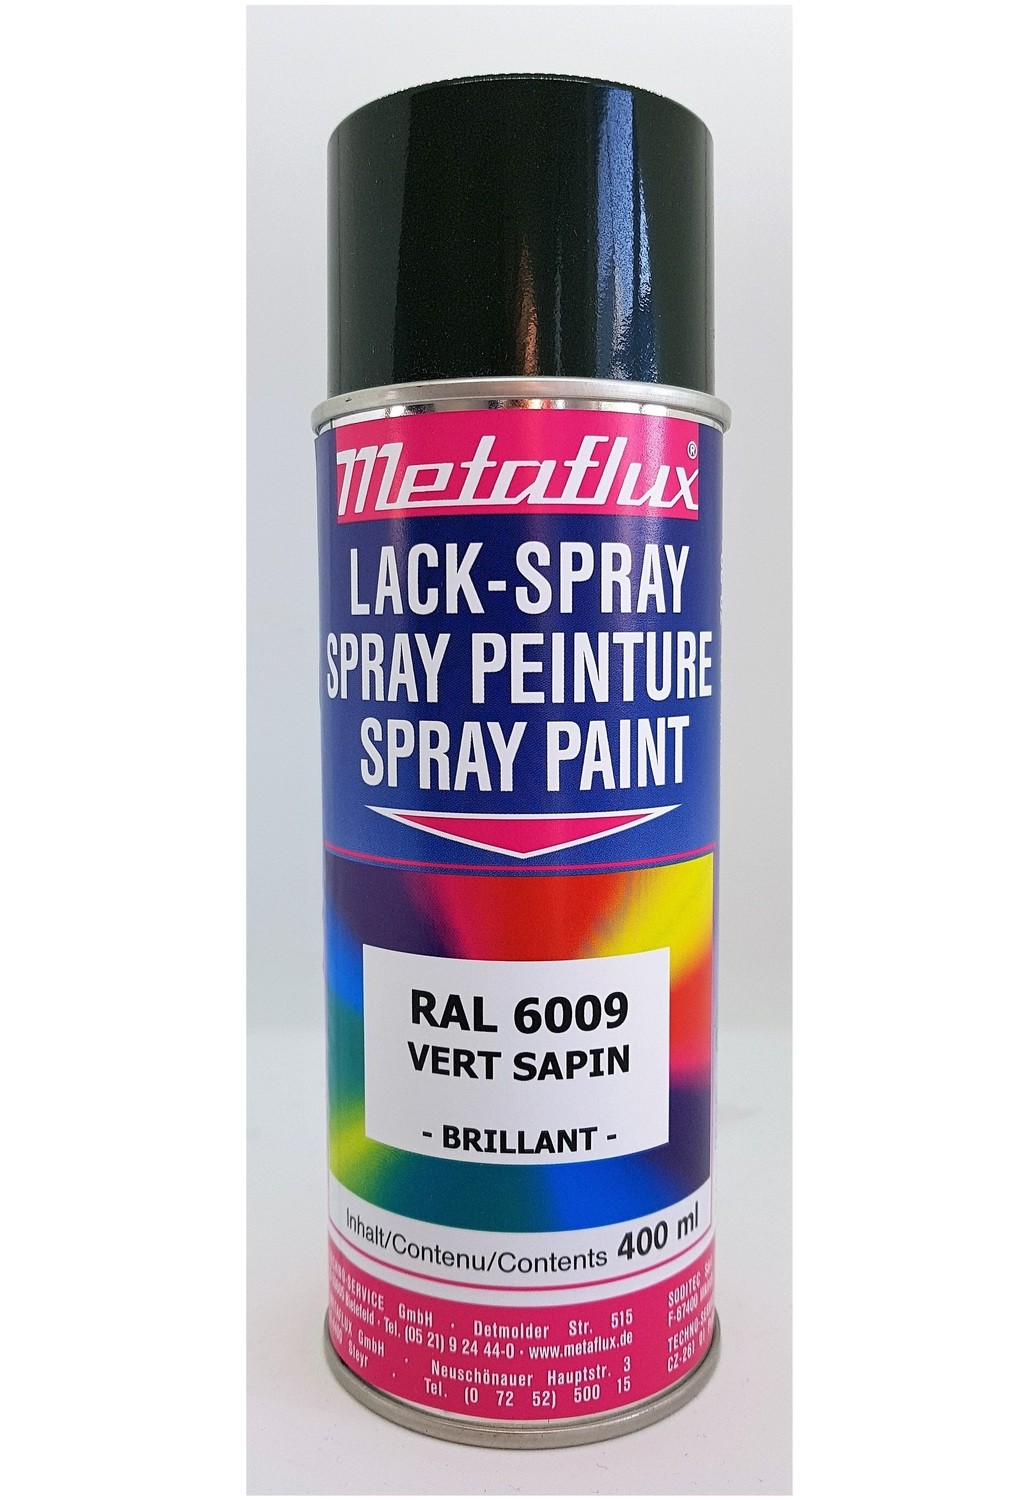 Metaflux Lak Spray RAL 6009 Dennegroen, inhoud: 400 ml